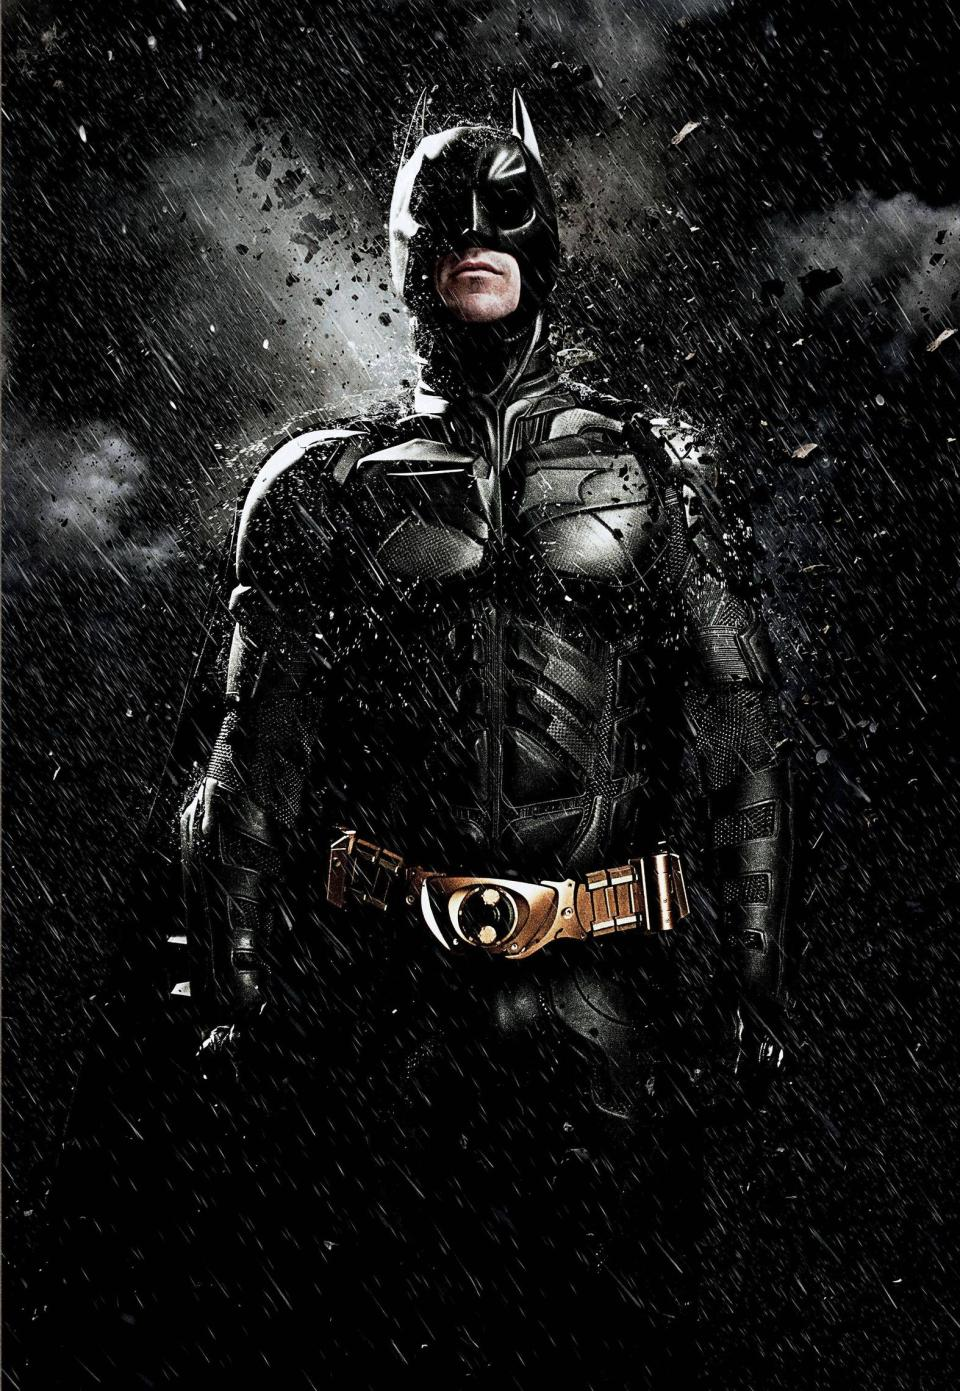 THE DARK KNIGHT RISES Textless Posters and Banners (6)